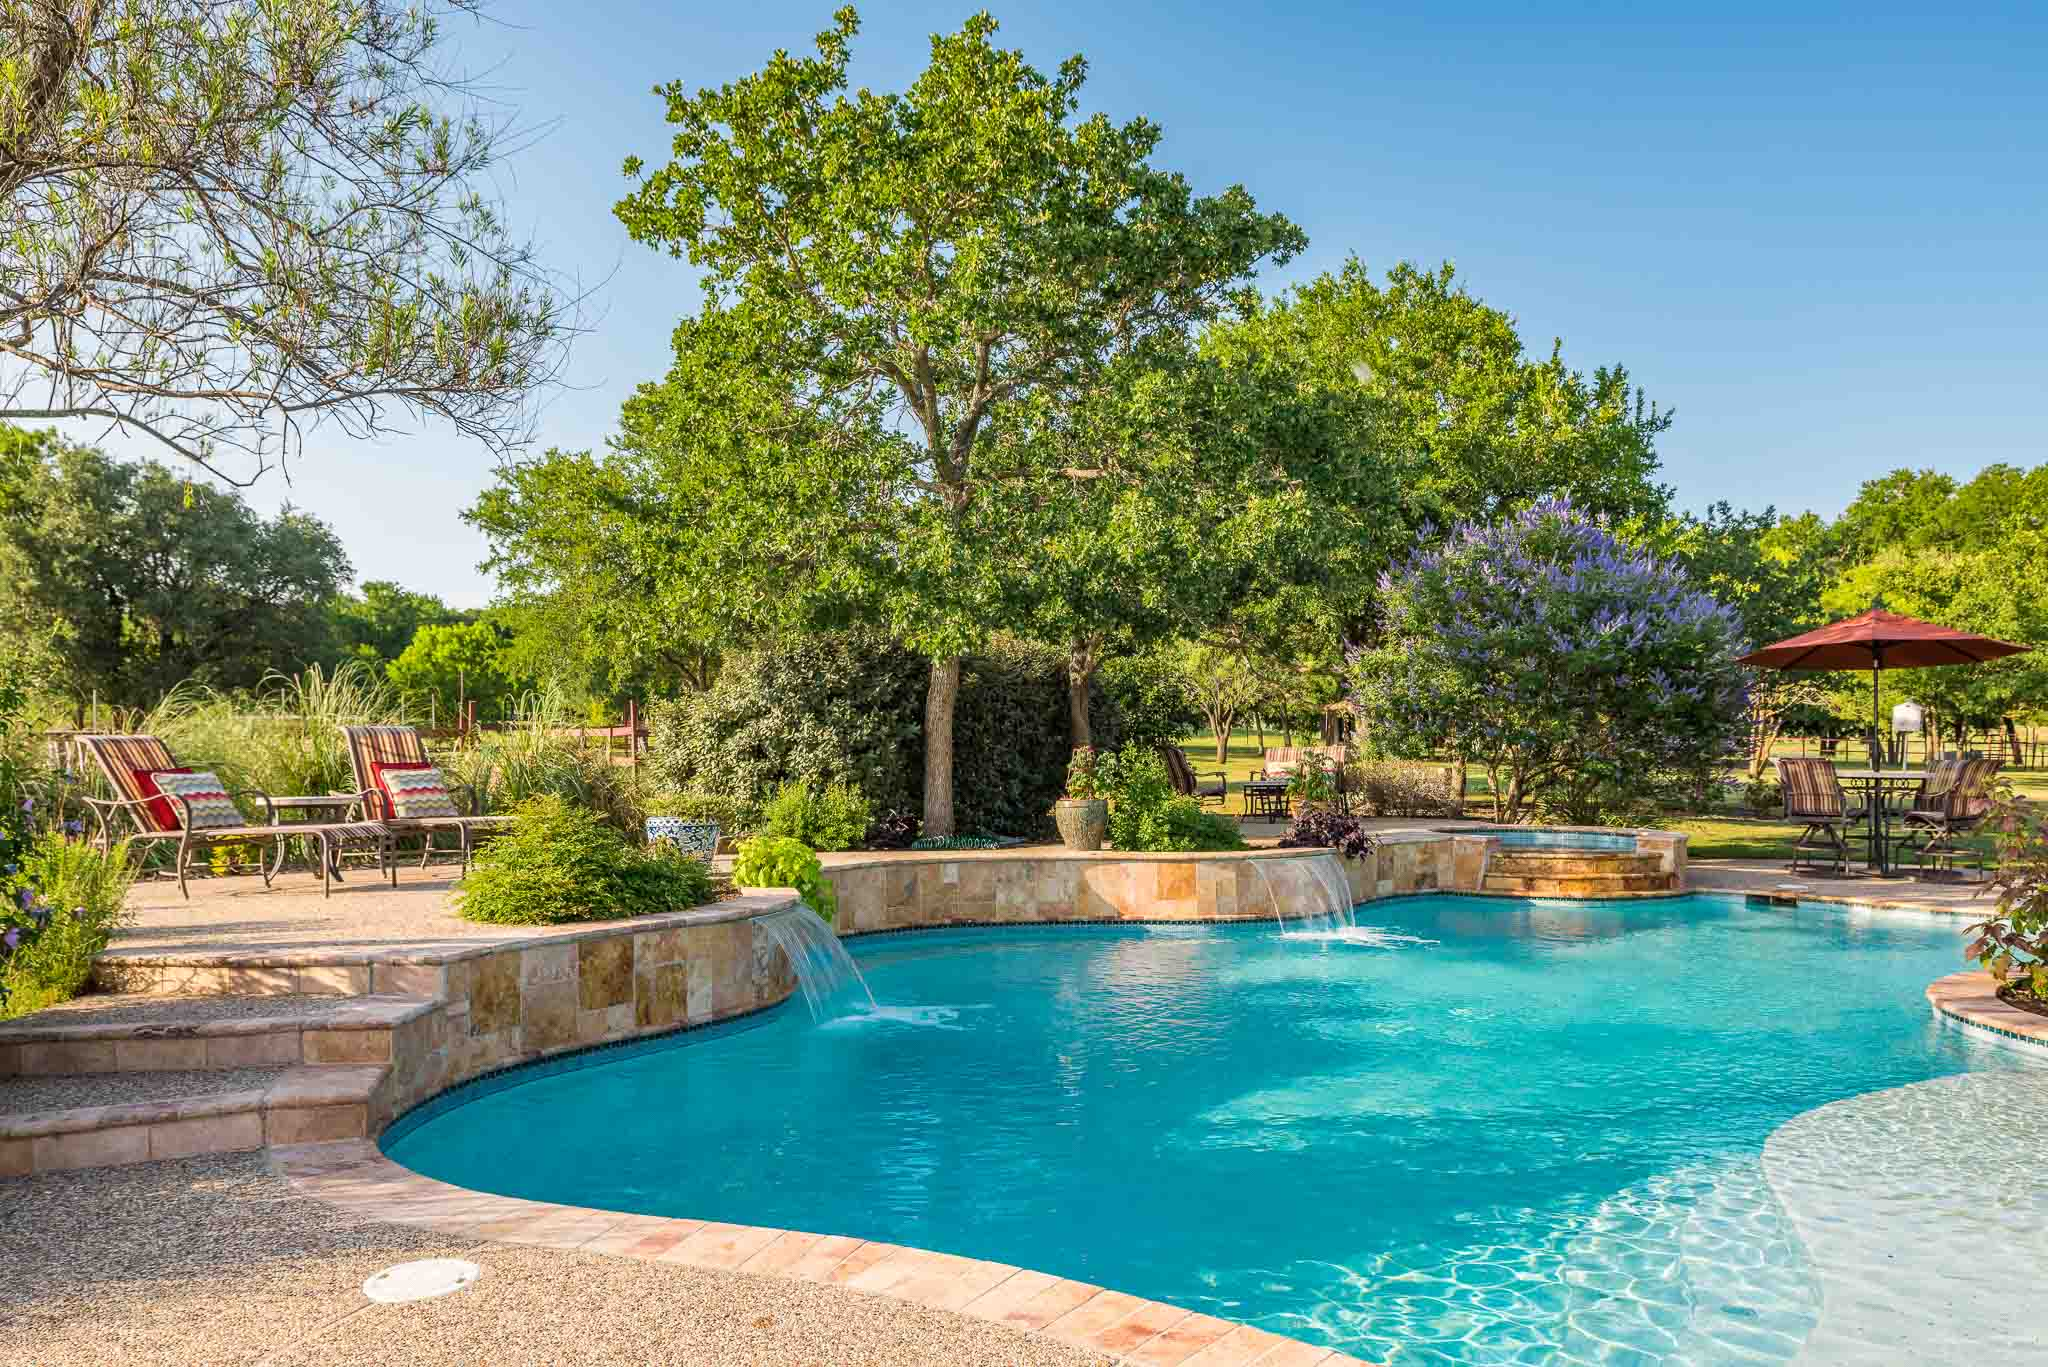 Pool paradise in home for sale in Fort Worth